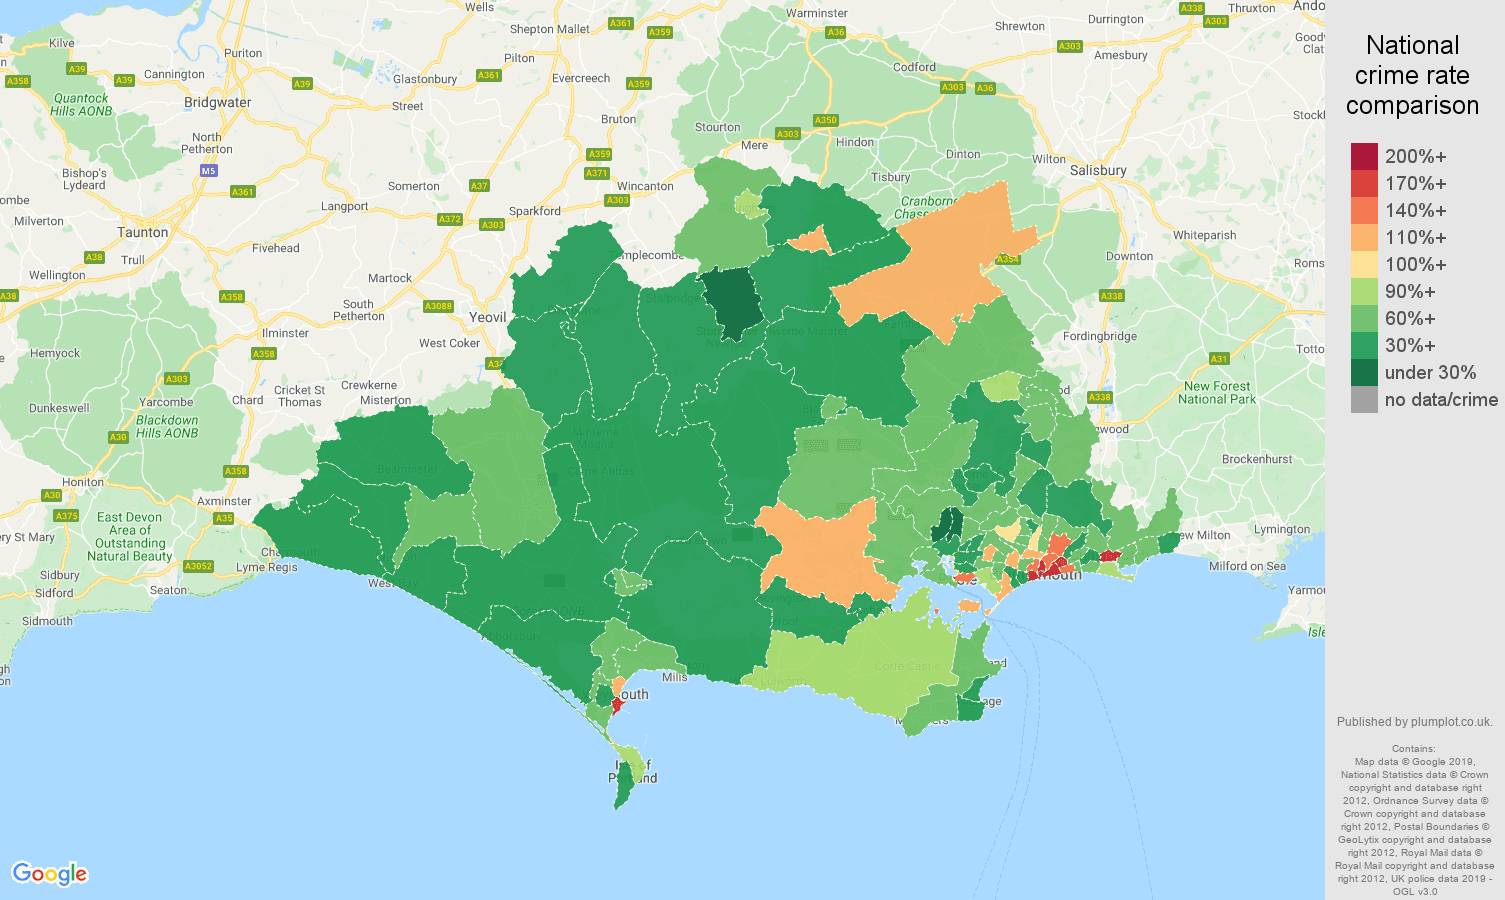 Dorset other theft crime rate comparison map